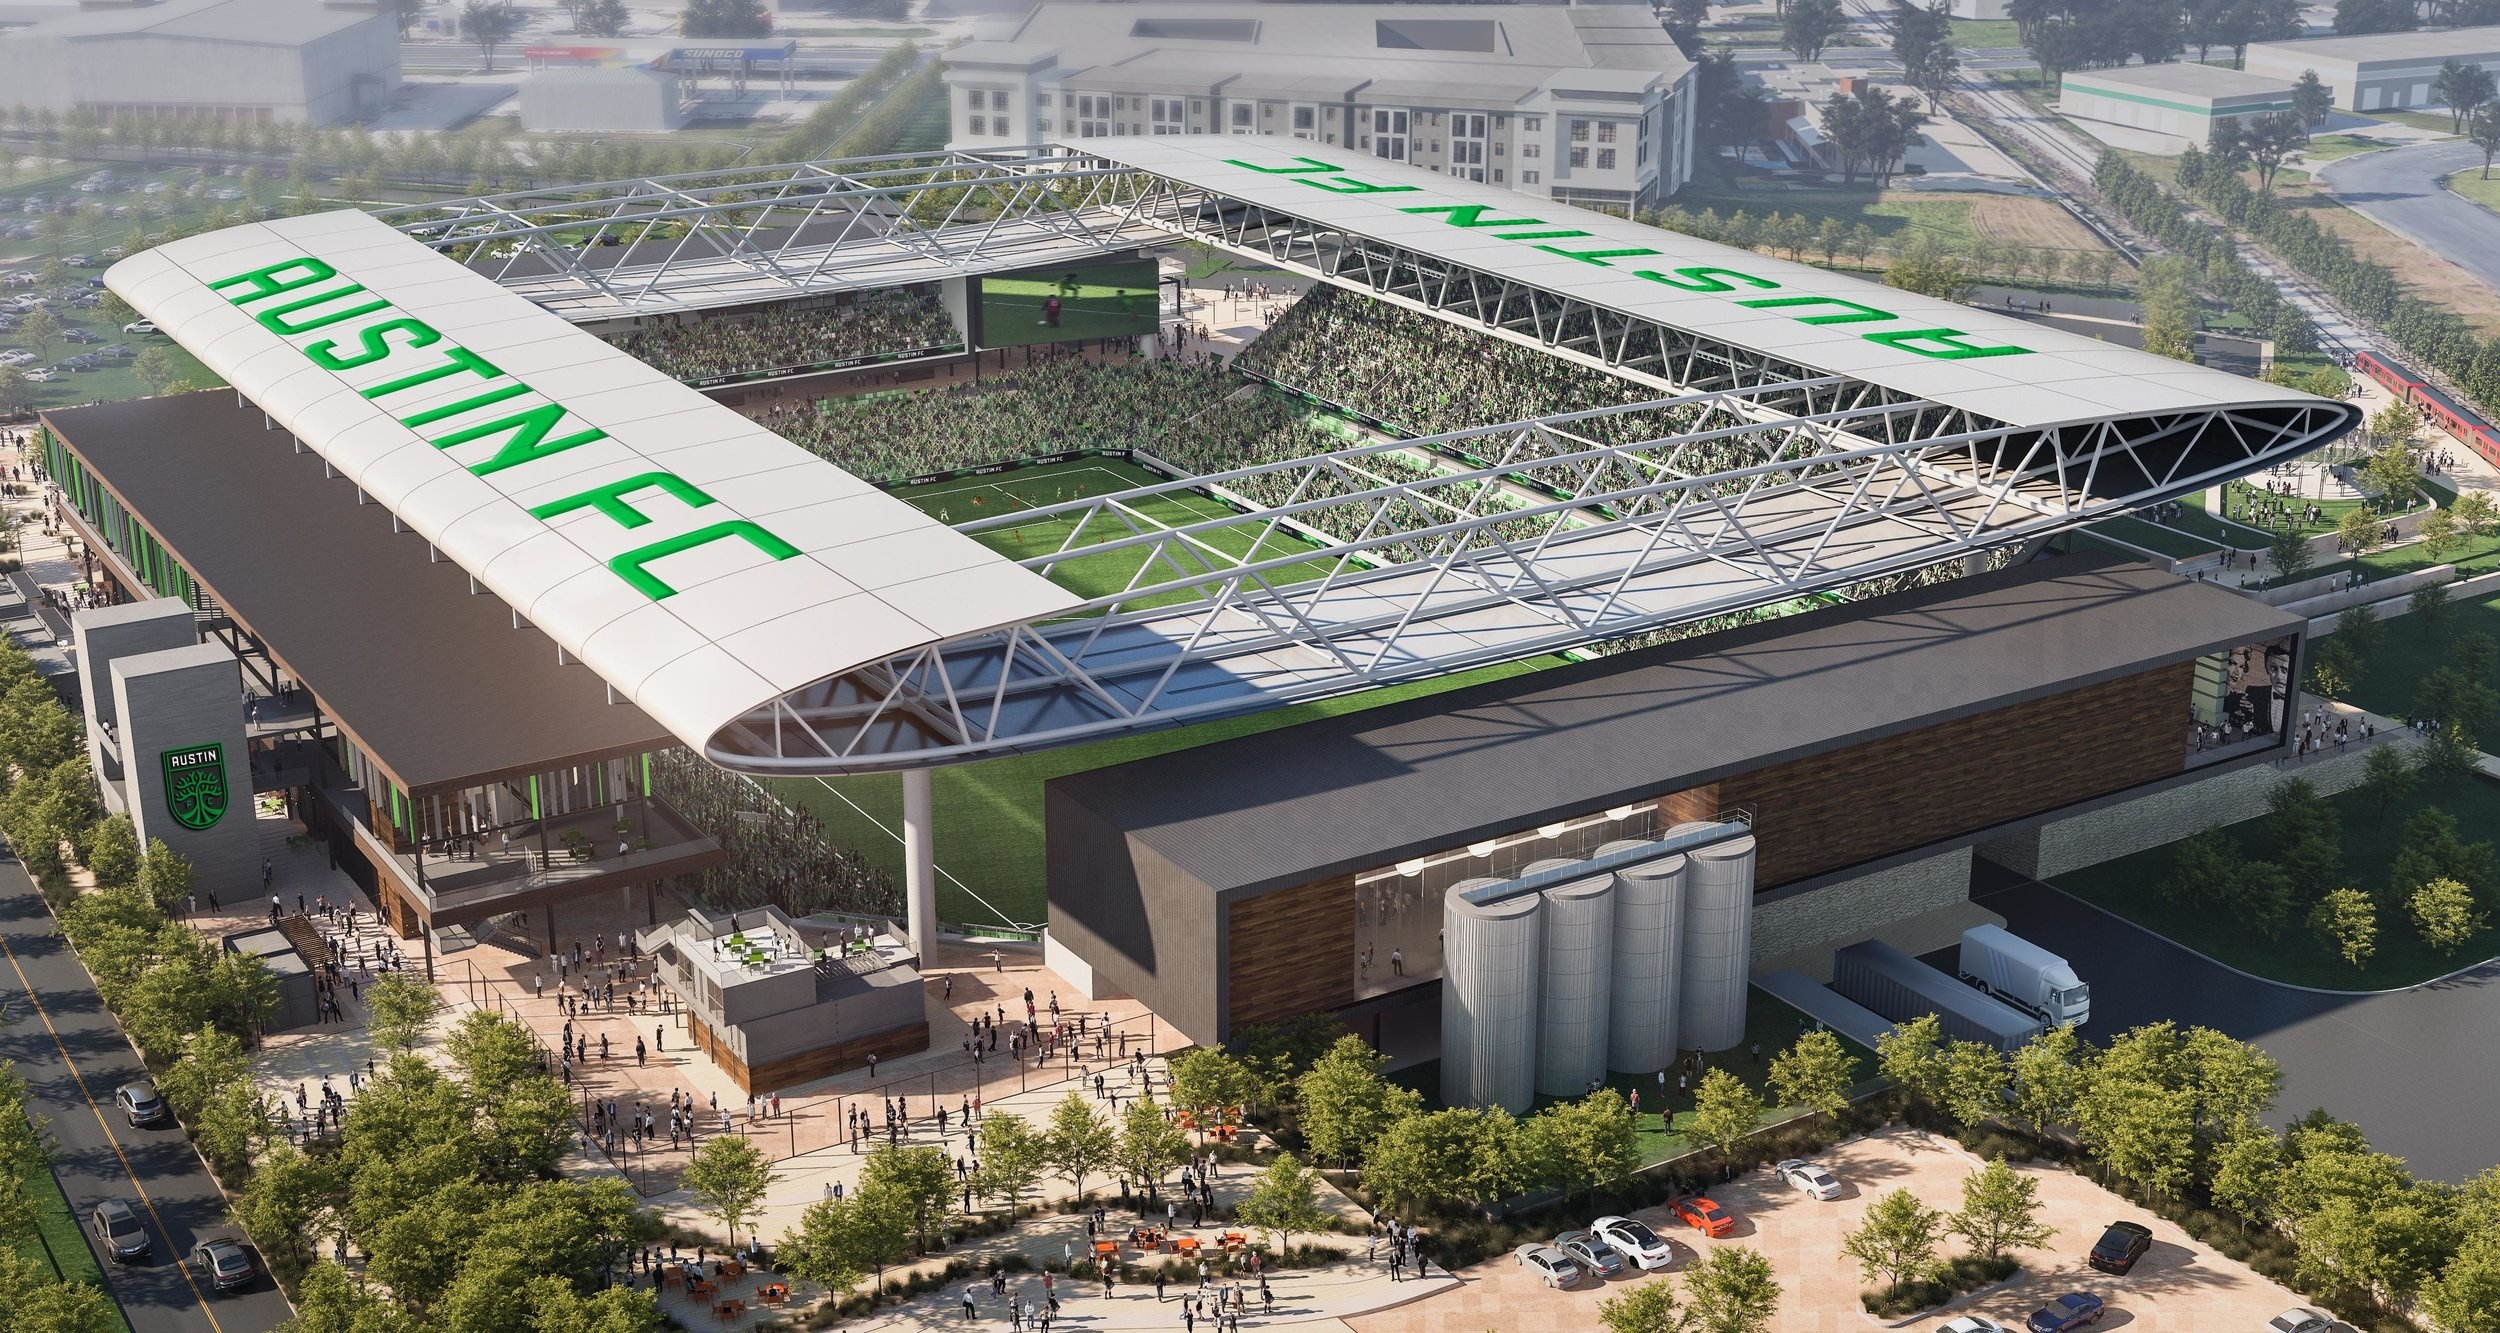 FC Austin will join MLS in 2021